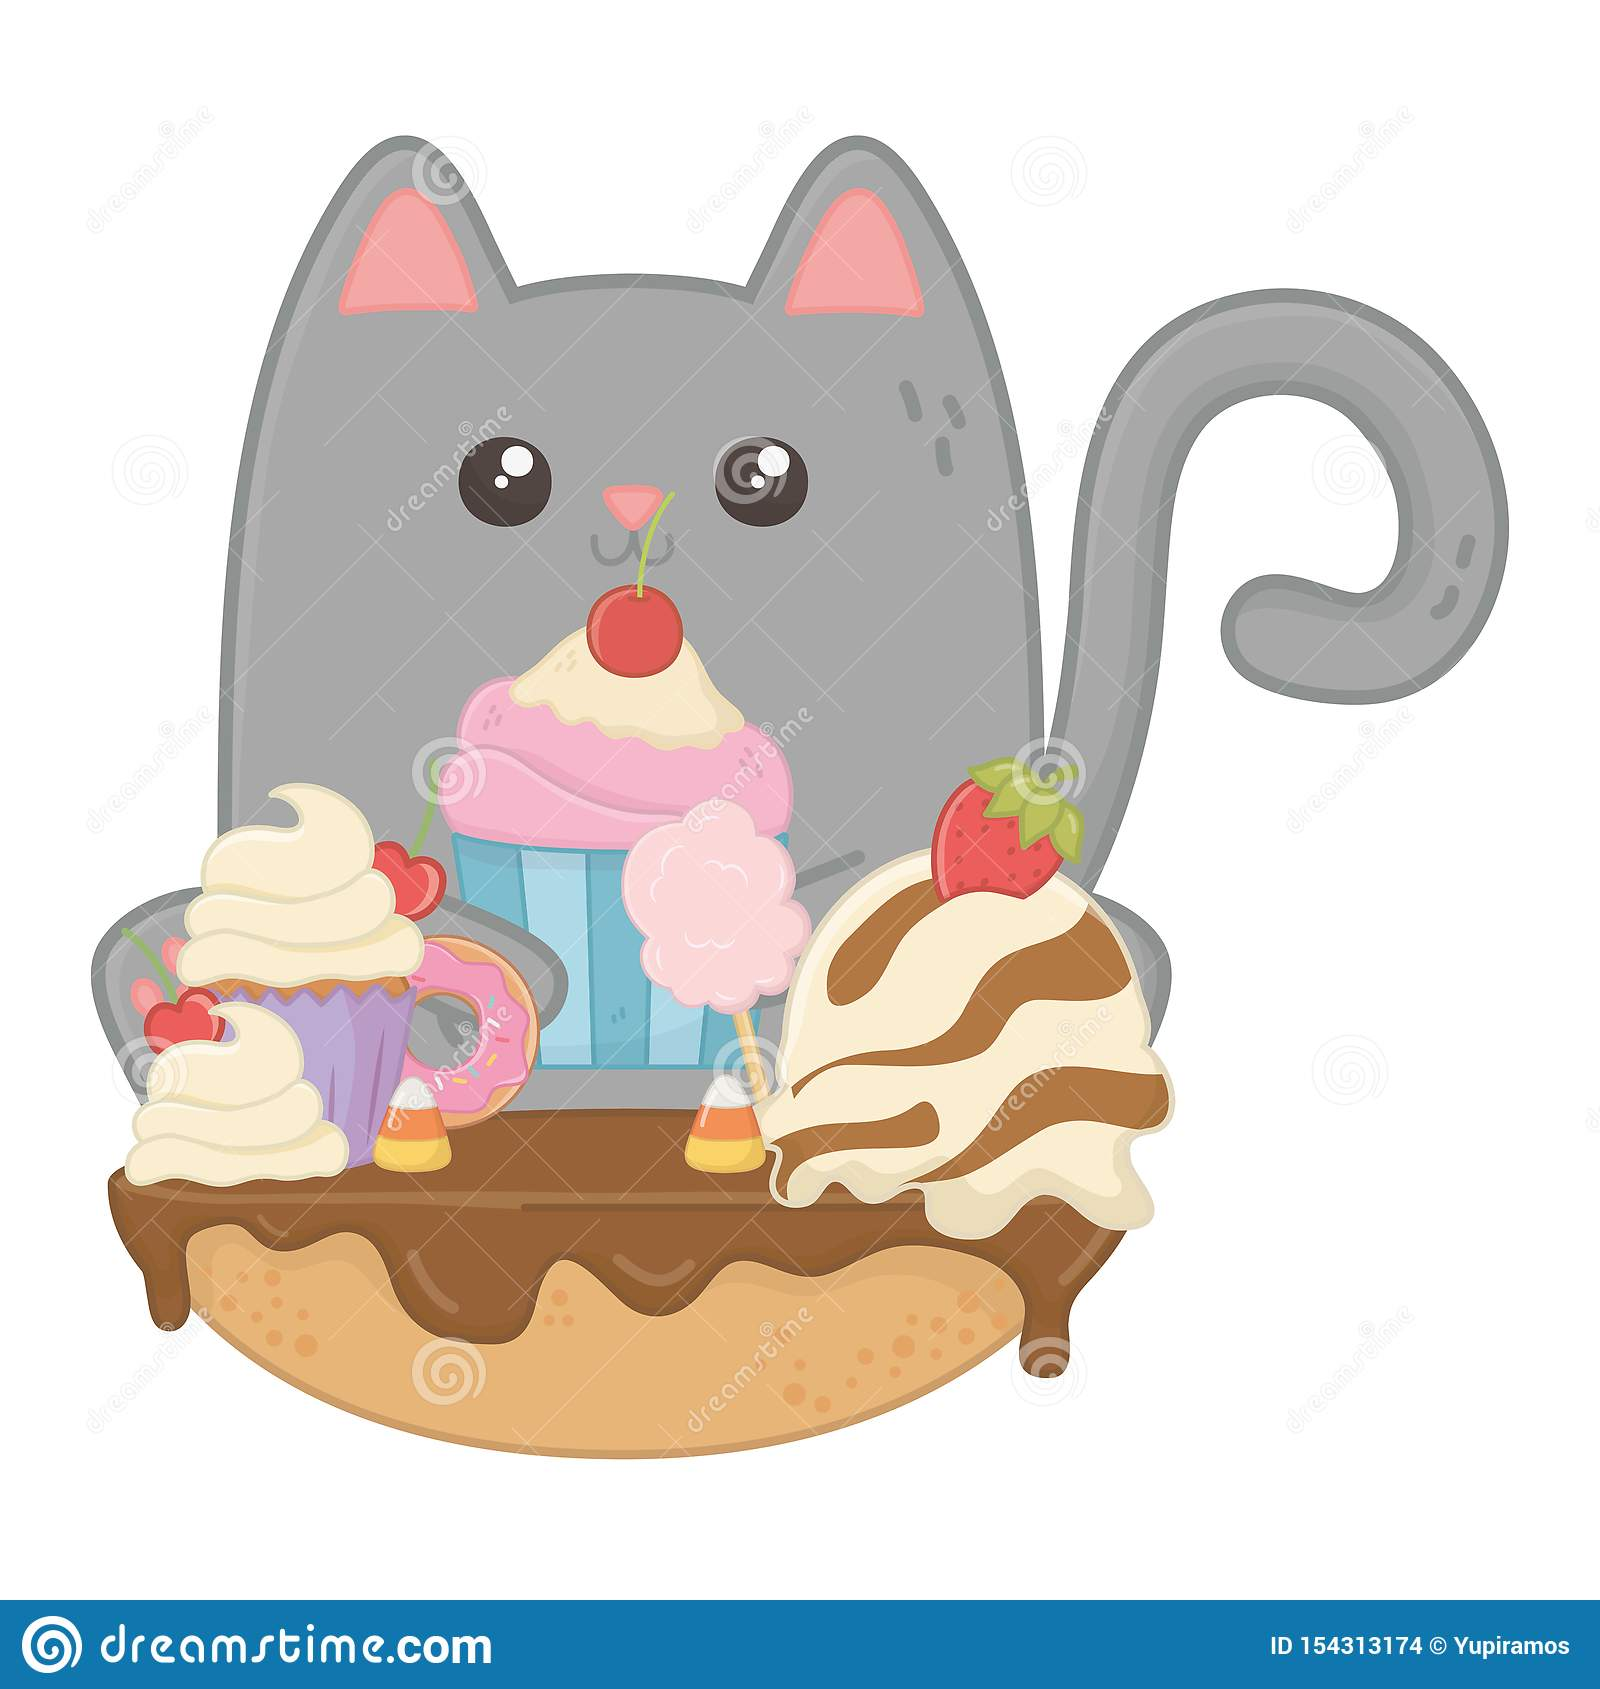 Kawaii Of Cat Cartoon With Cake Design Stock Vector Illustration